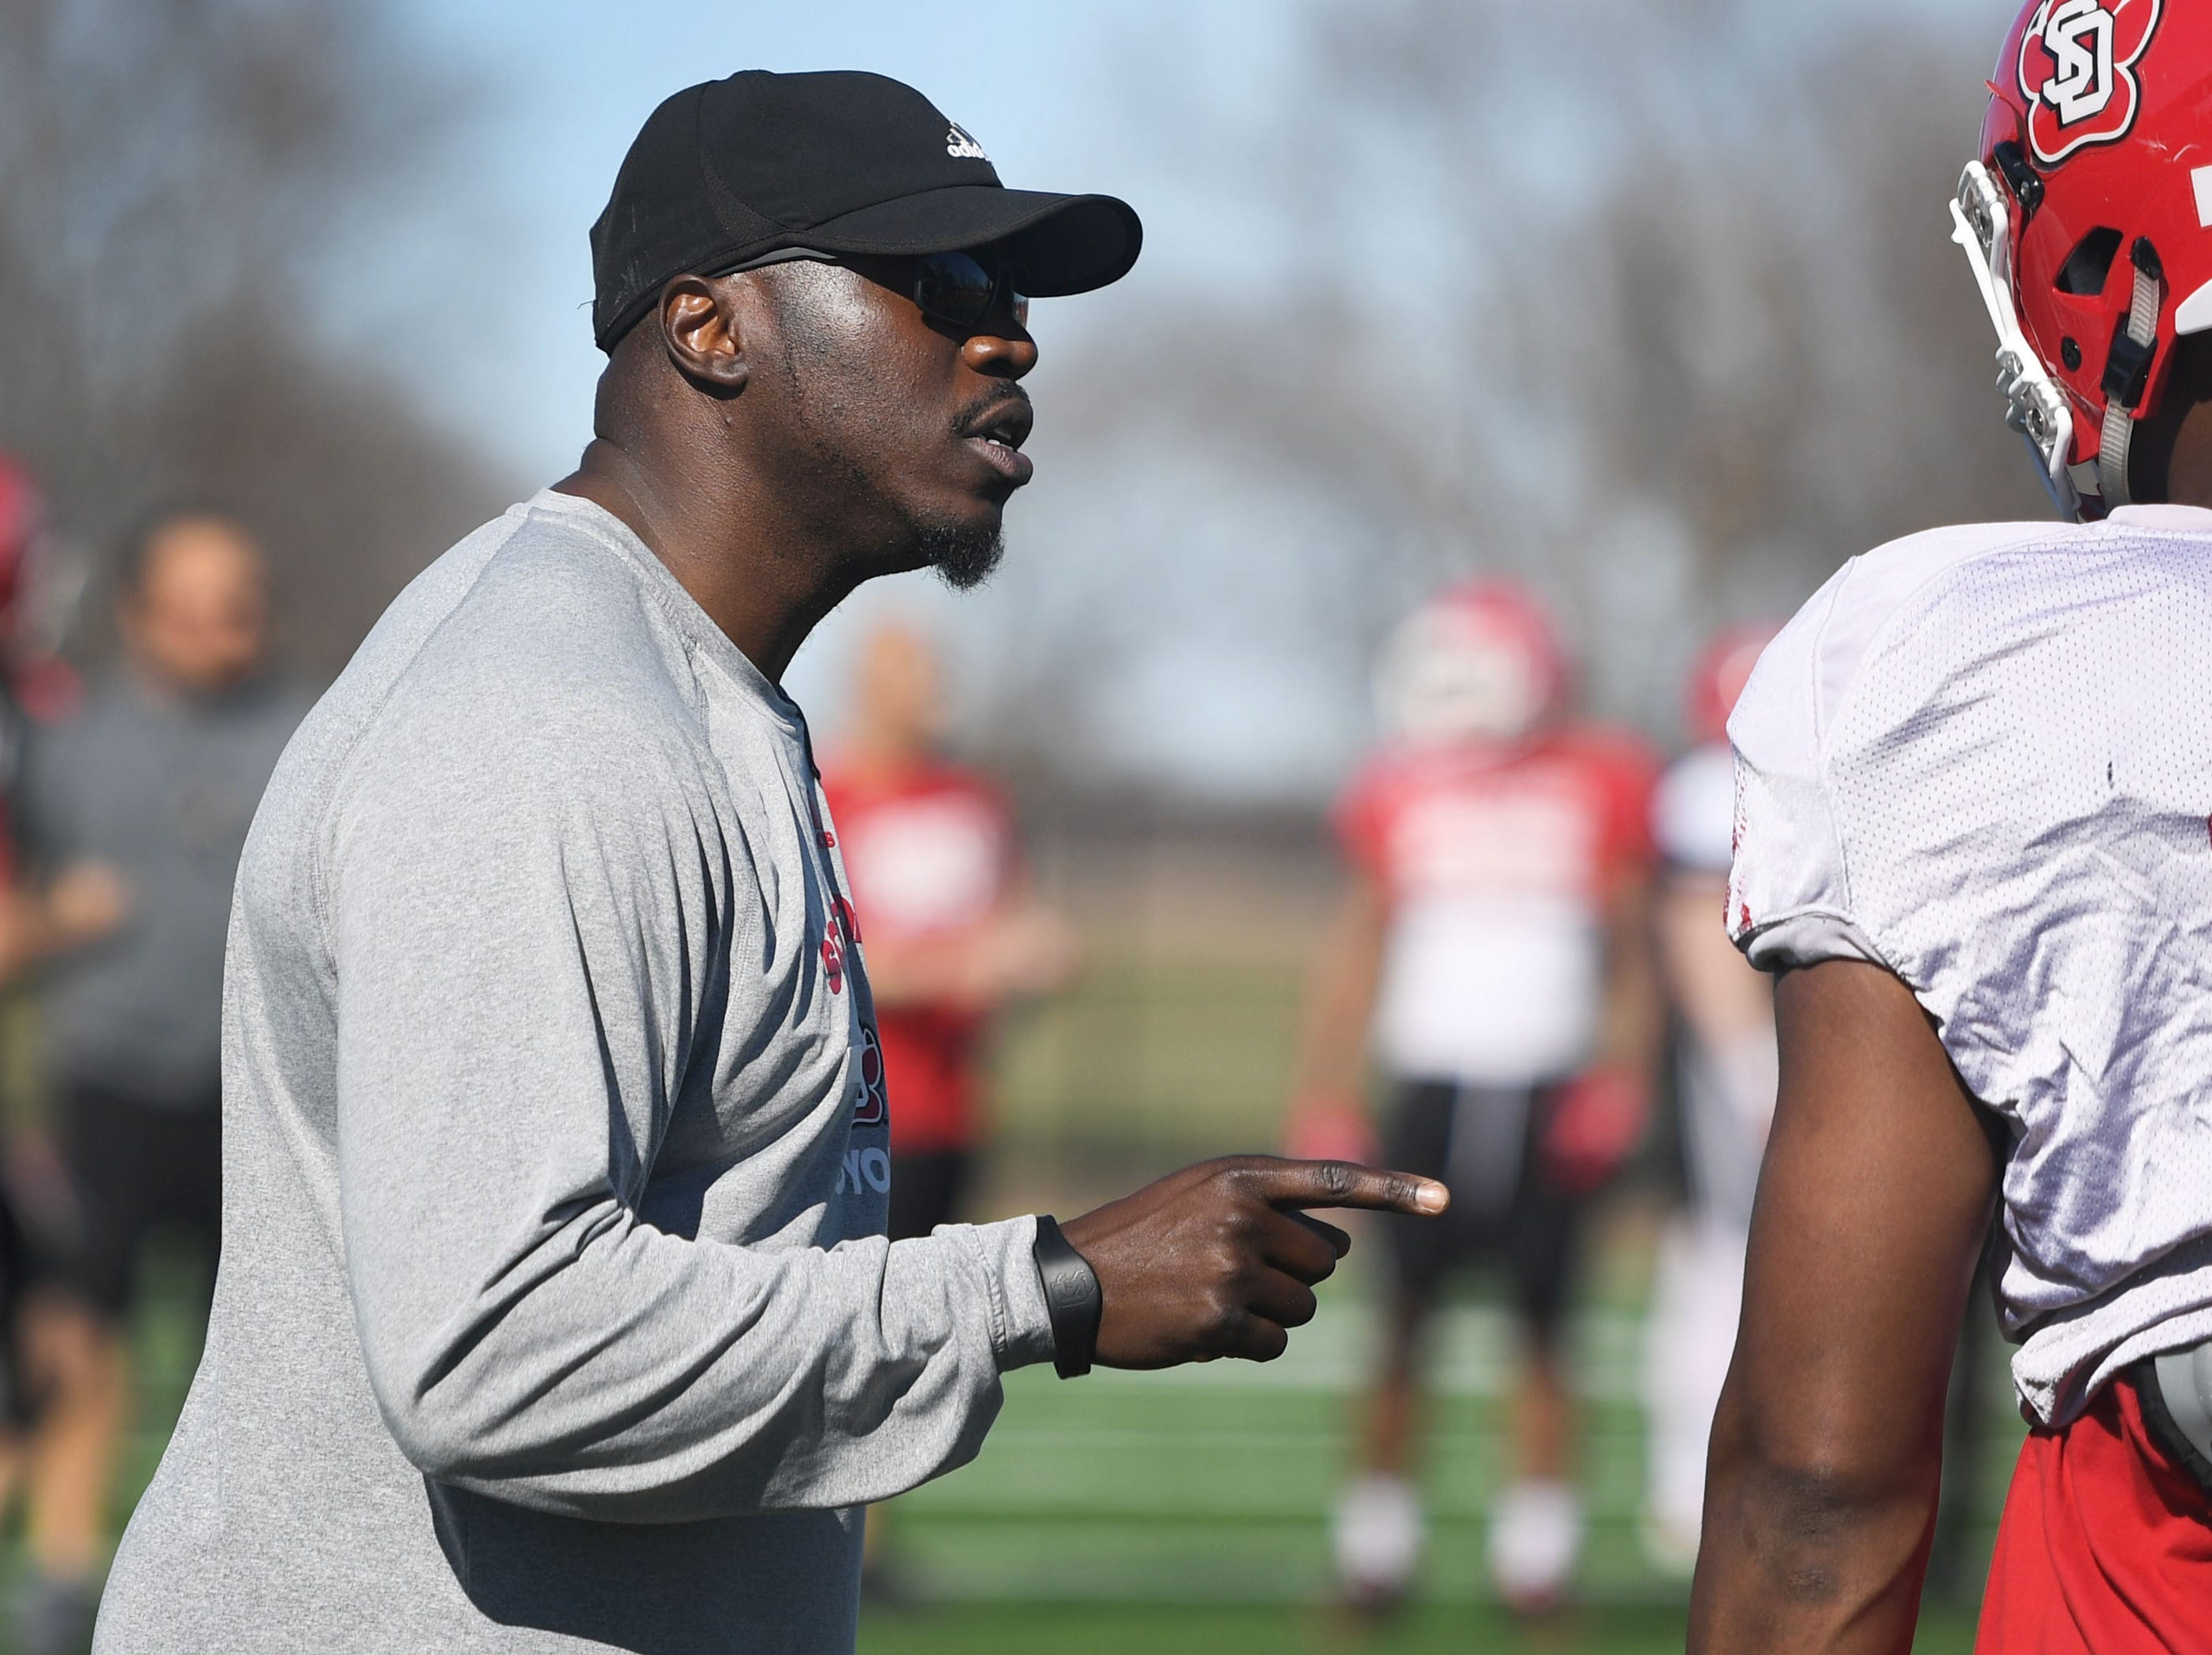 USD coach Abdul Hodge during spring football camp Monday, April, 8, on the outdoor practice field at the university in Vermillion.